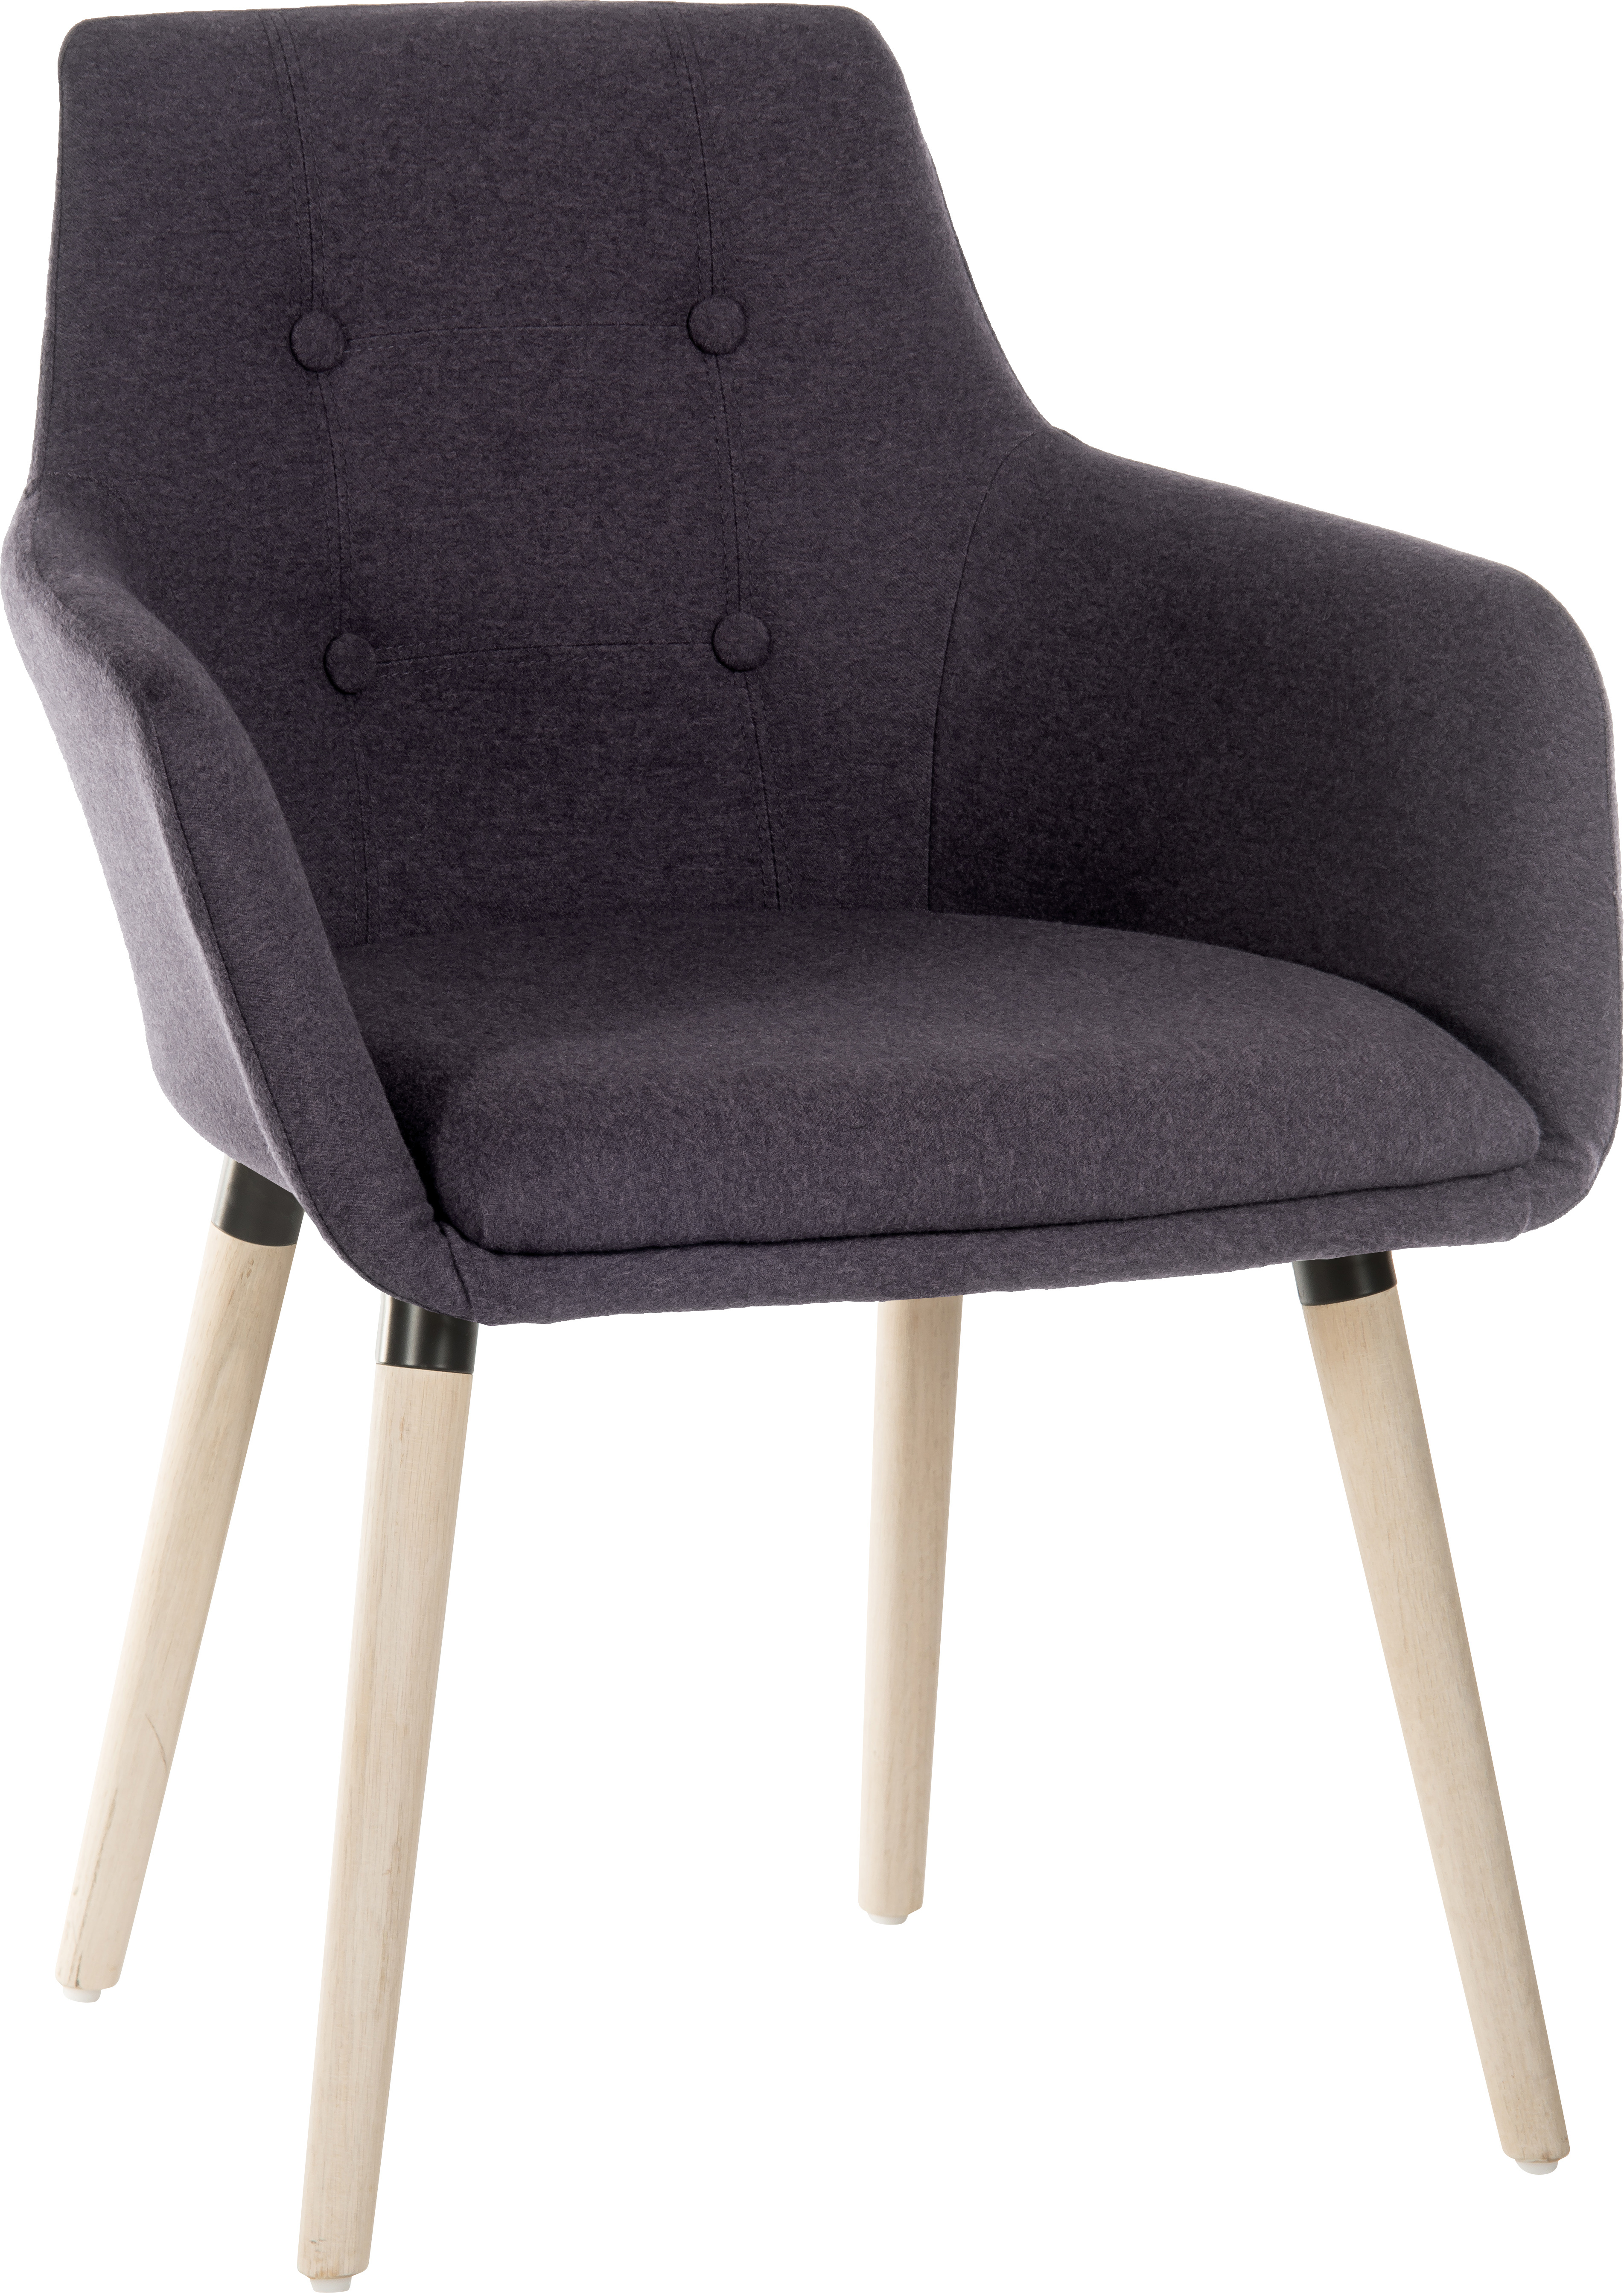 Teknik Office 4 Legged Reception Chair (Pack of 2) In Graphite Soft Brushed Fabric Oak Coloured Legs